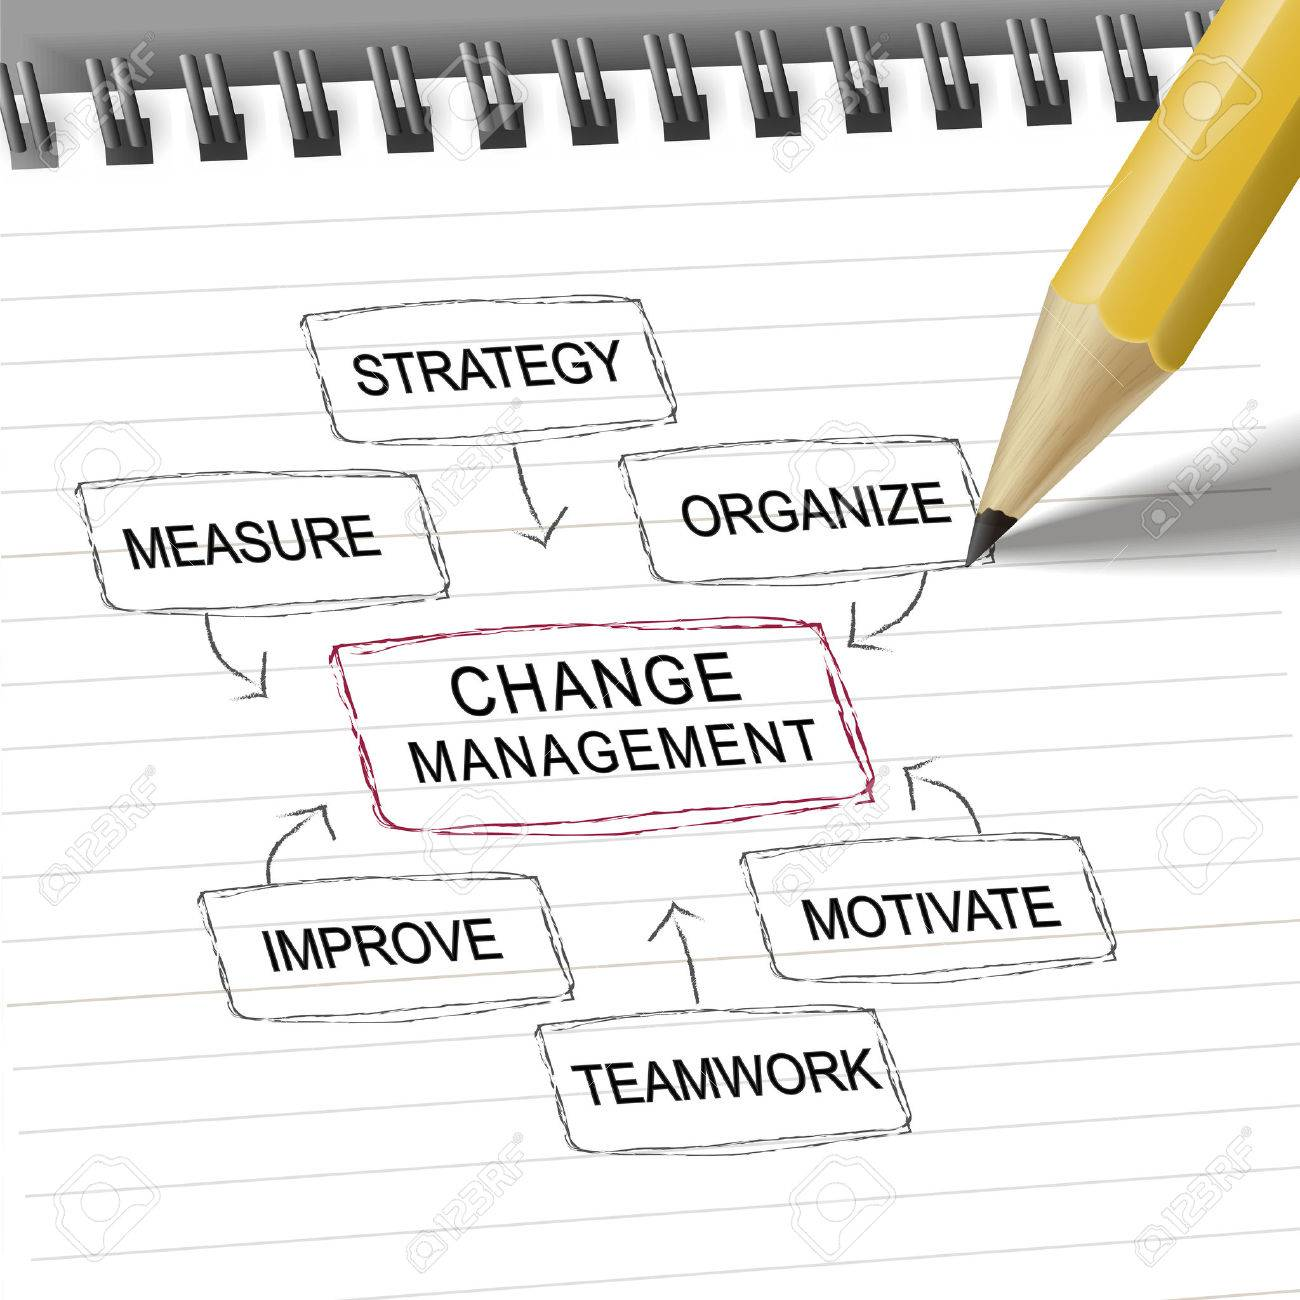 Change Management Flow Chart With Pencil On Notebook Royalty Free